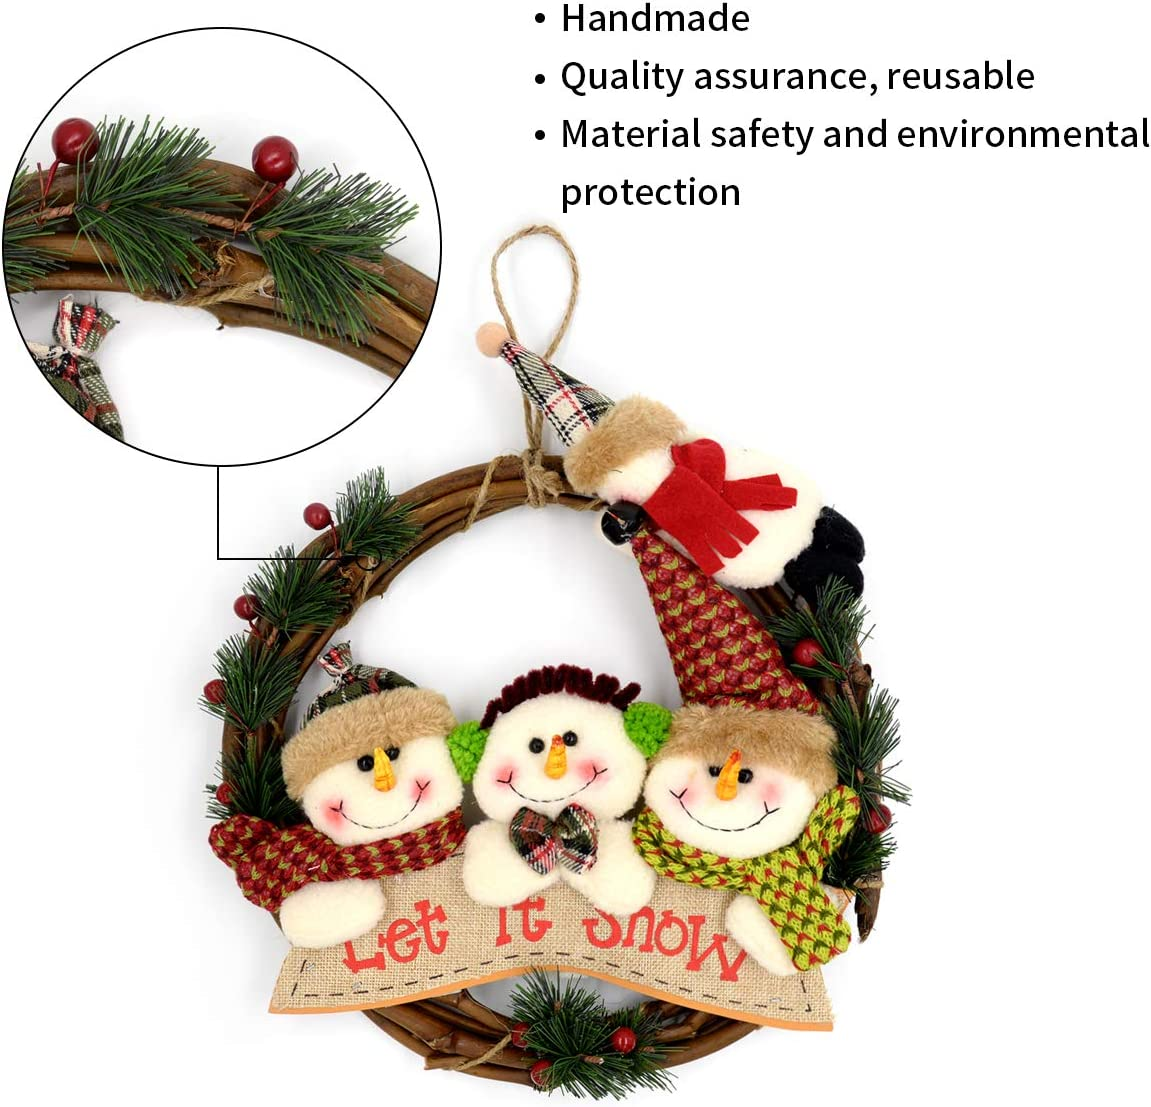 Christmas Wreath Christmas Decoration Handmade Cute Snowman Berry Hanging Christmas Wreath Front Door Decoration Kitchen Dining